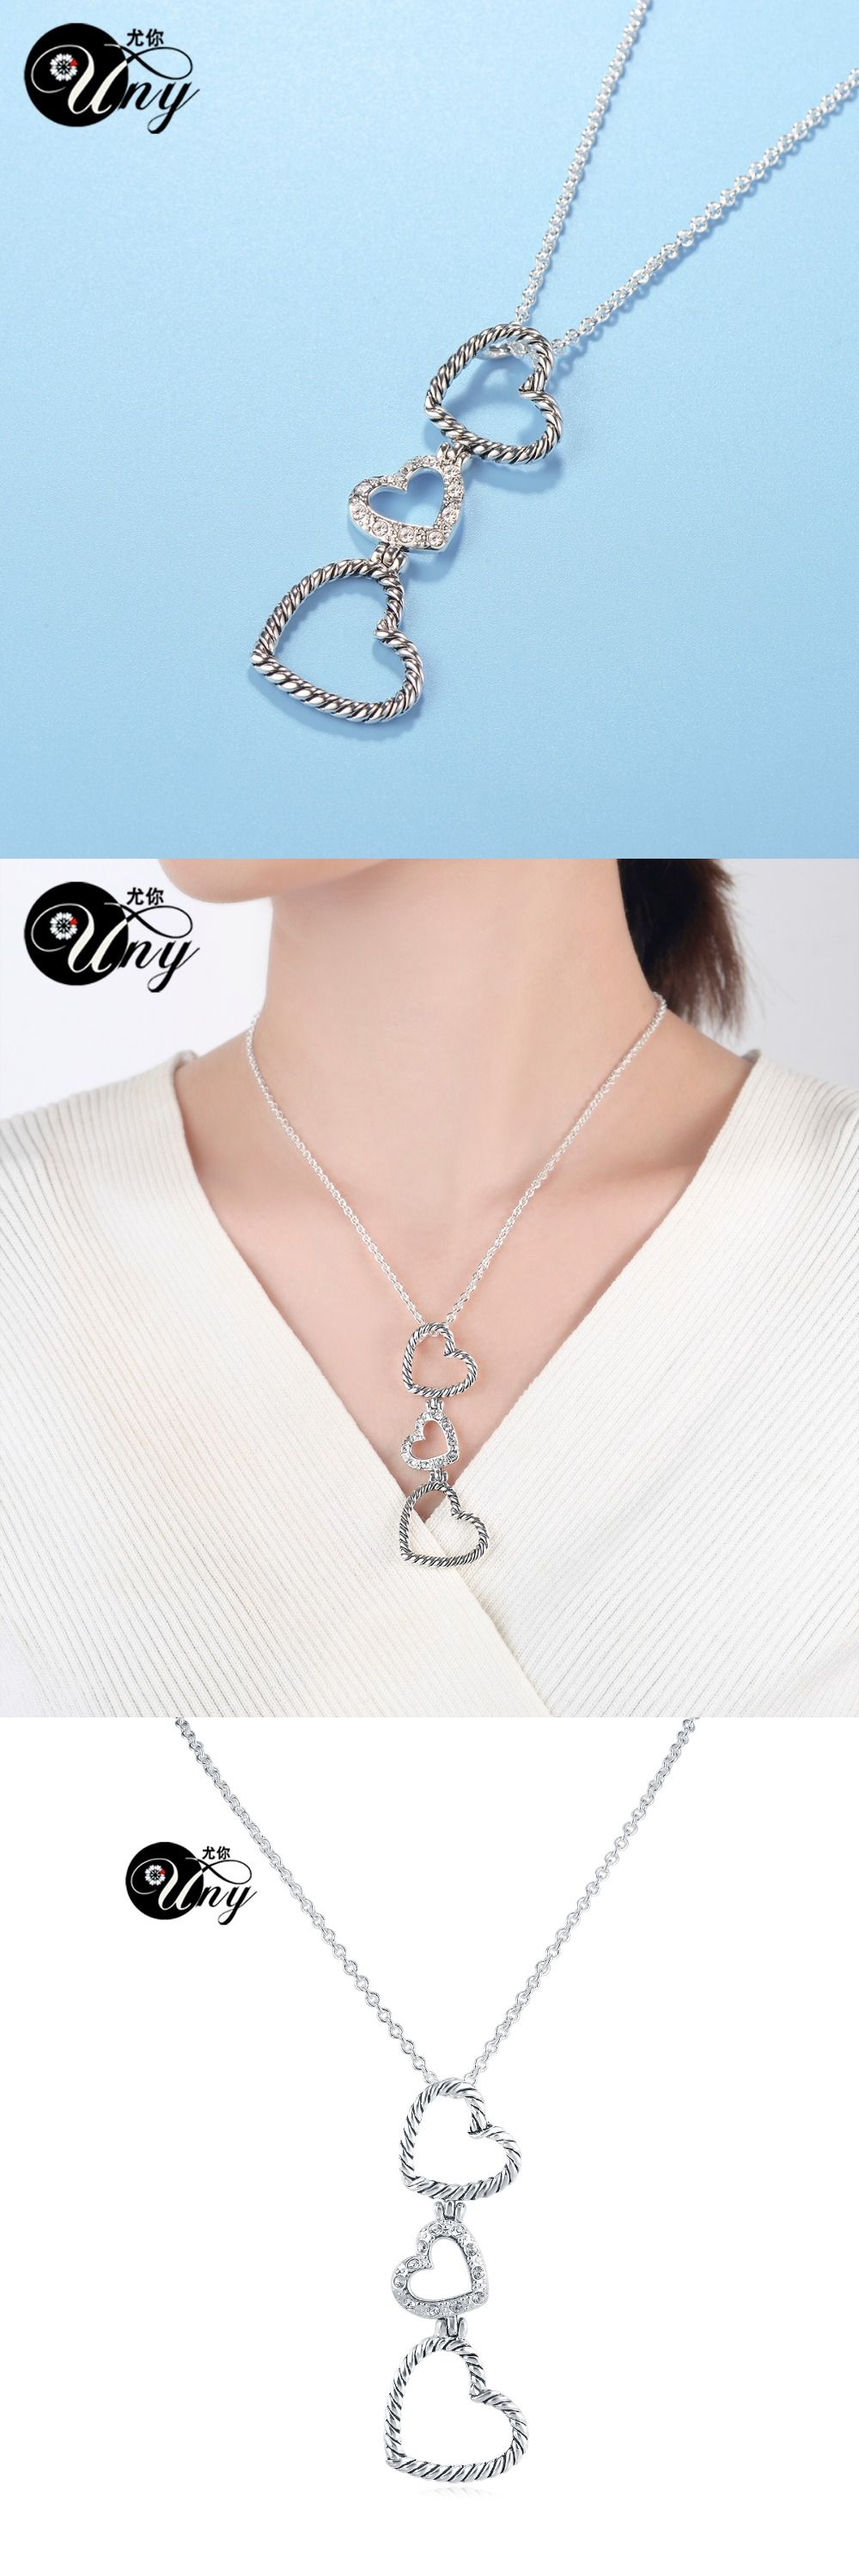 UNY Luxury Cable wire Necklaces design linked Chain Necklace Women ...